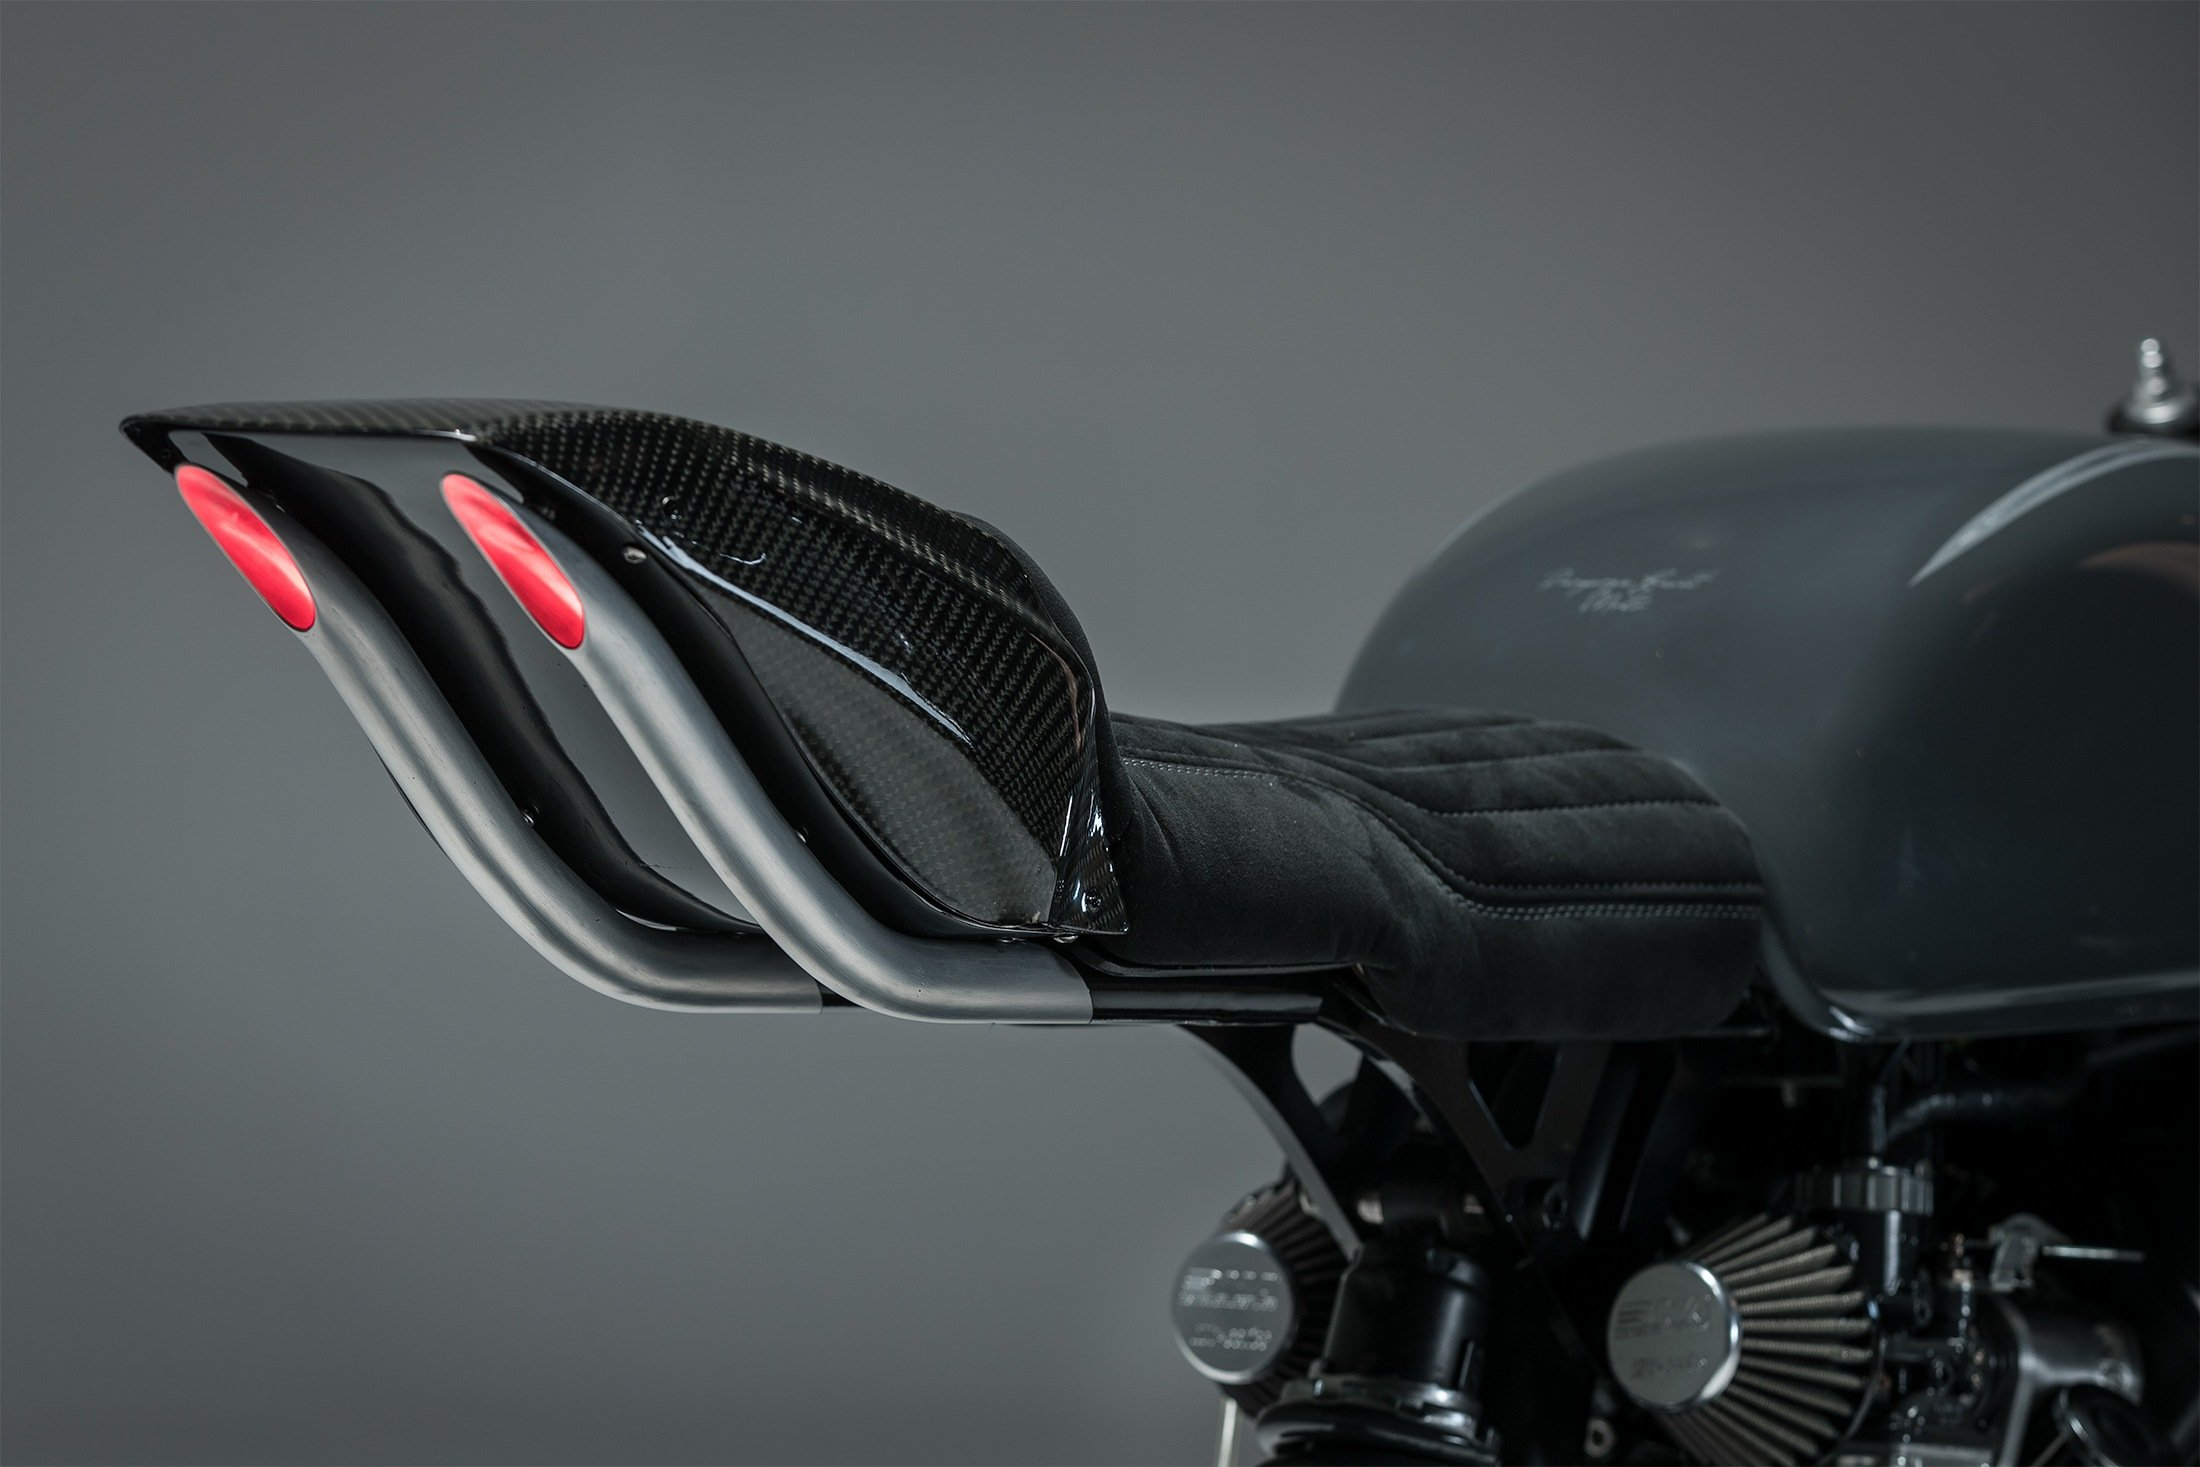 CX500 cafe racer custom LED lights australia